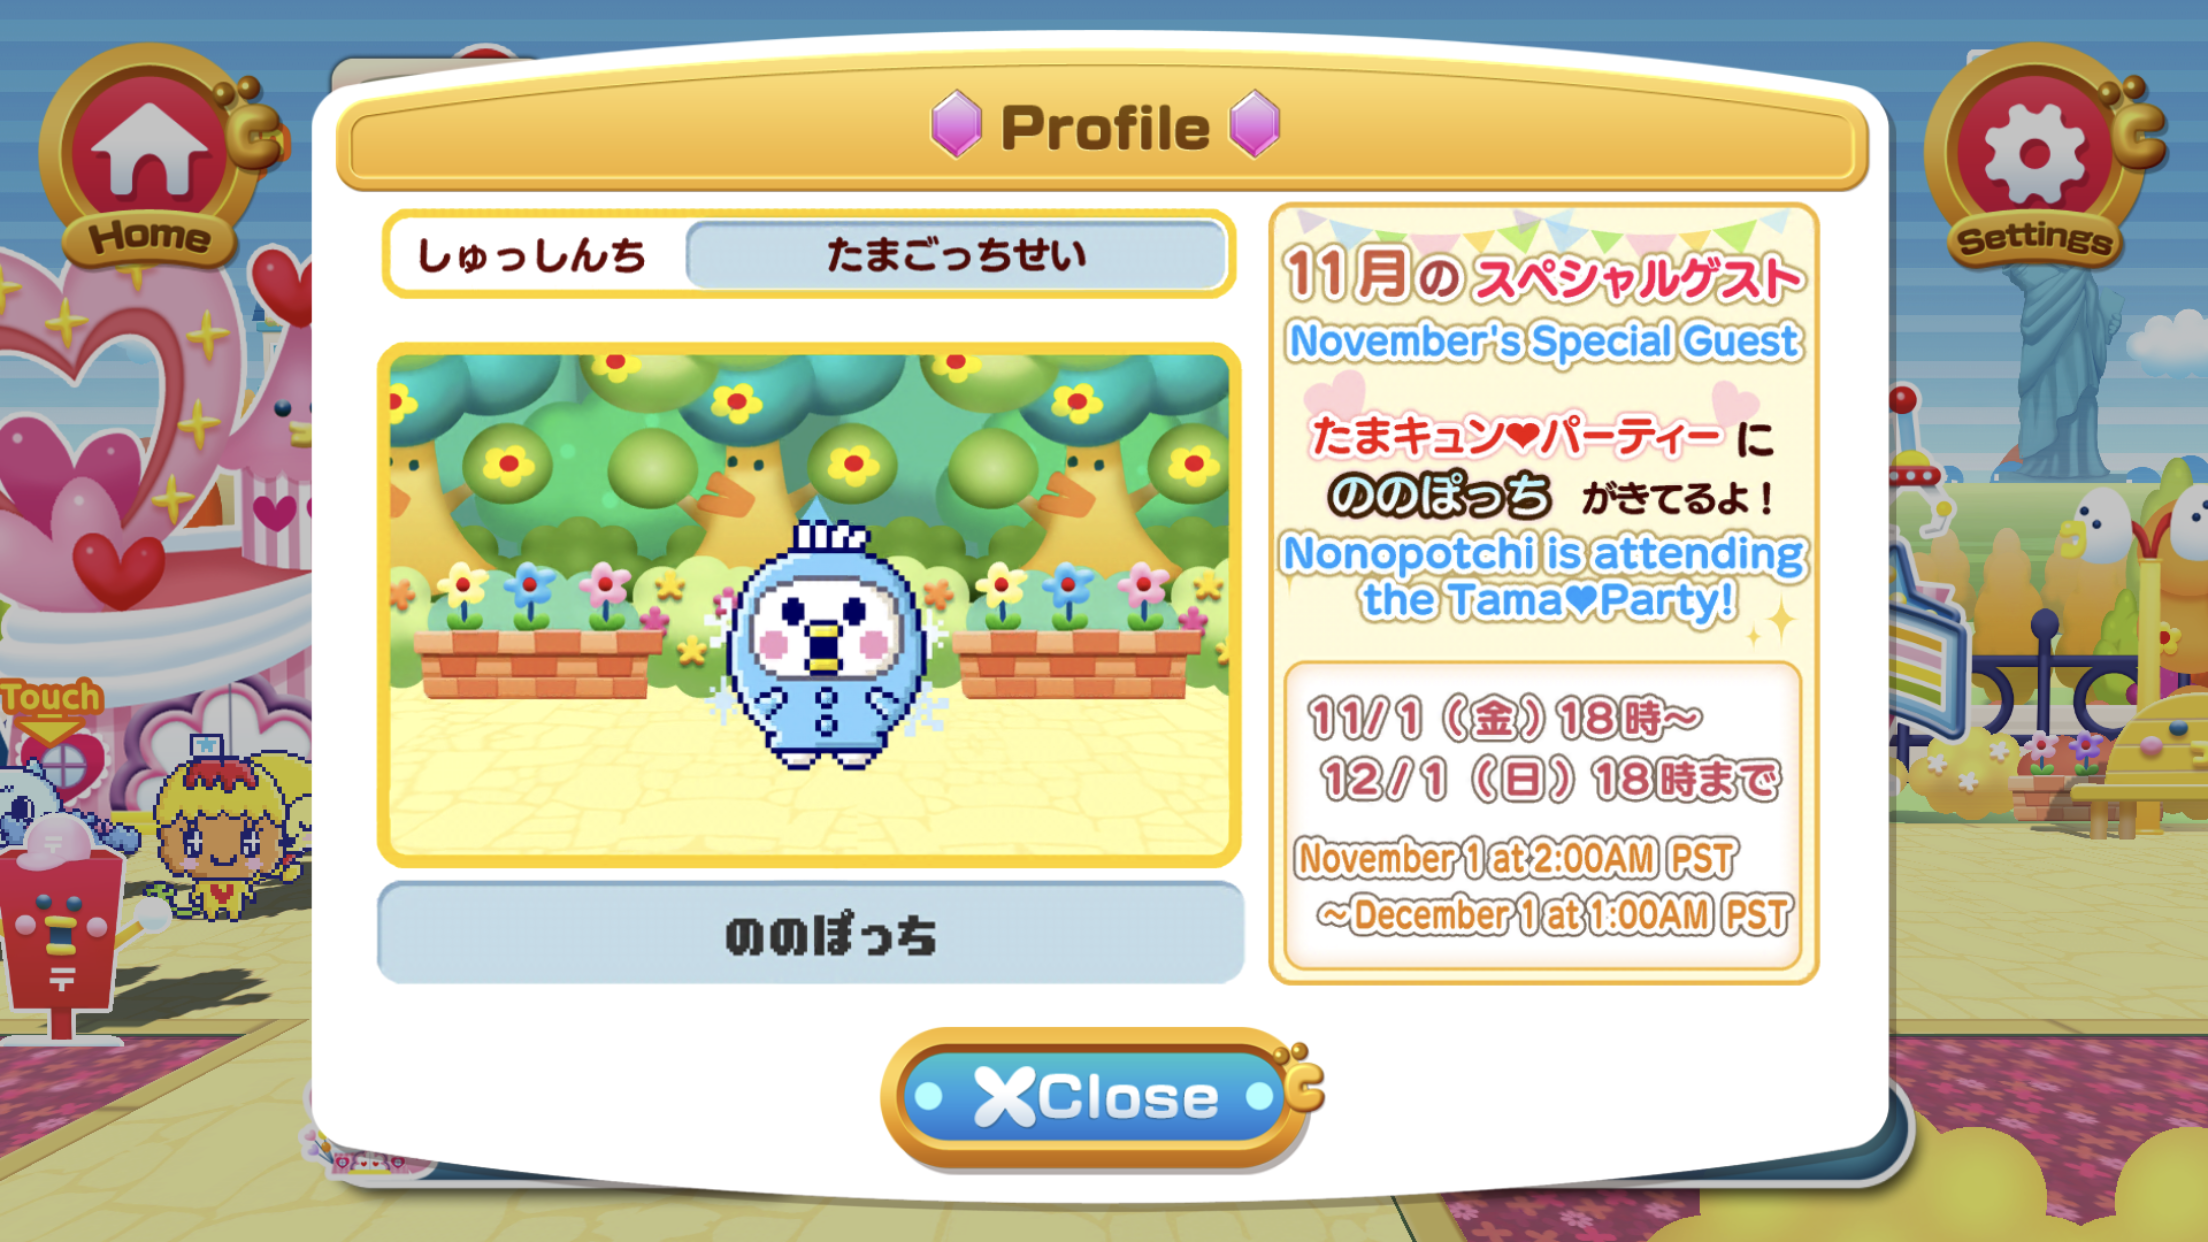 Nonopotchi in the Tamagotchi app